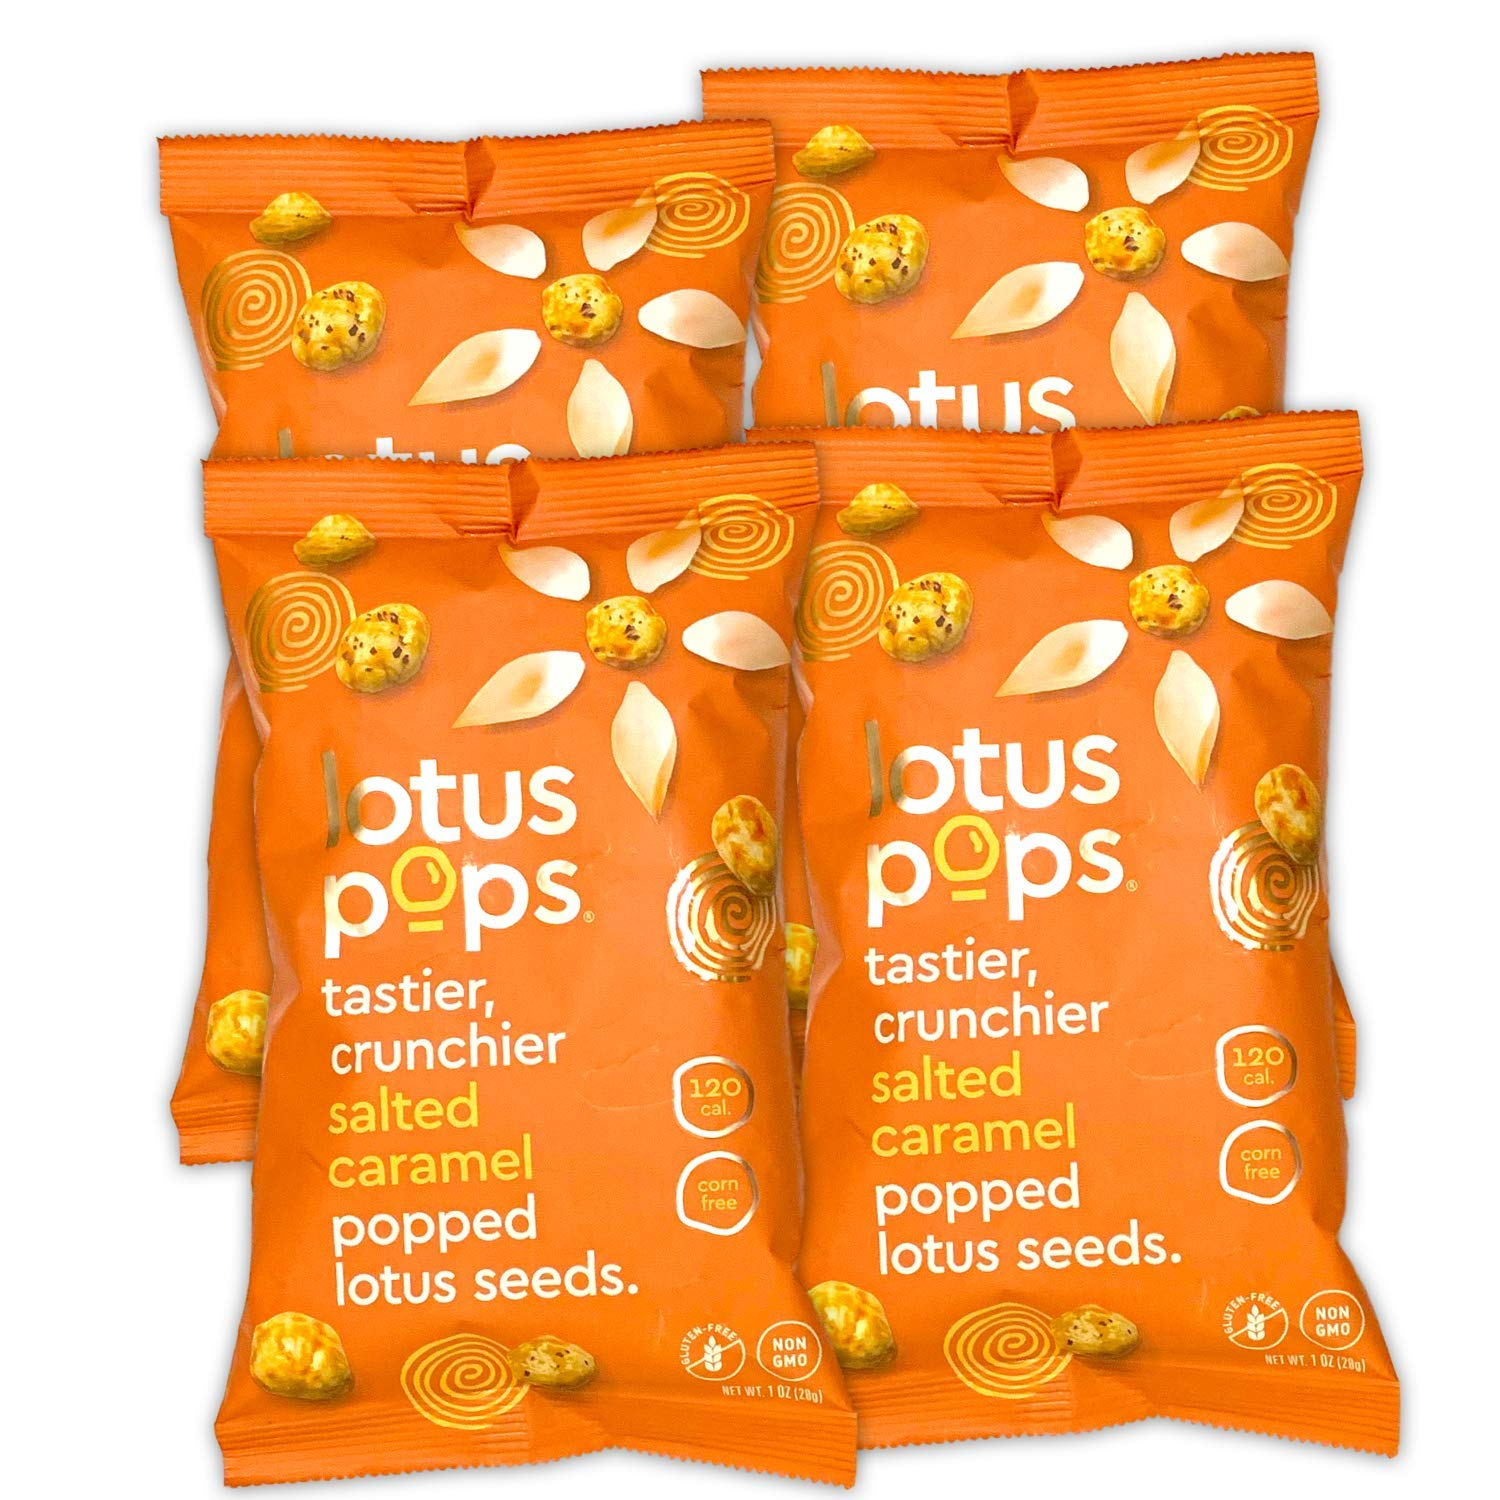 Lotus Pops - Popped Lotus (Water Lily) Seed Snacks – Low Calorie Gluten Free Snacks | Plant Protein | Roasted Not-Fried | Paleo | GrainFree | Non GMO | Healthy Dessert | (Salted Caramel 4 1oz Packs)